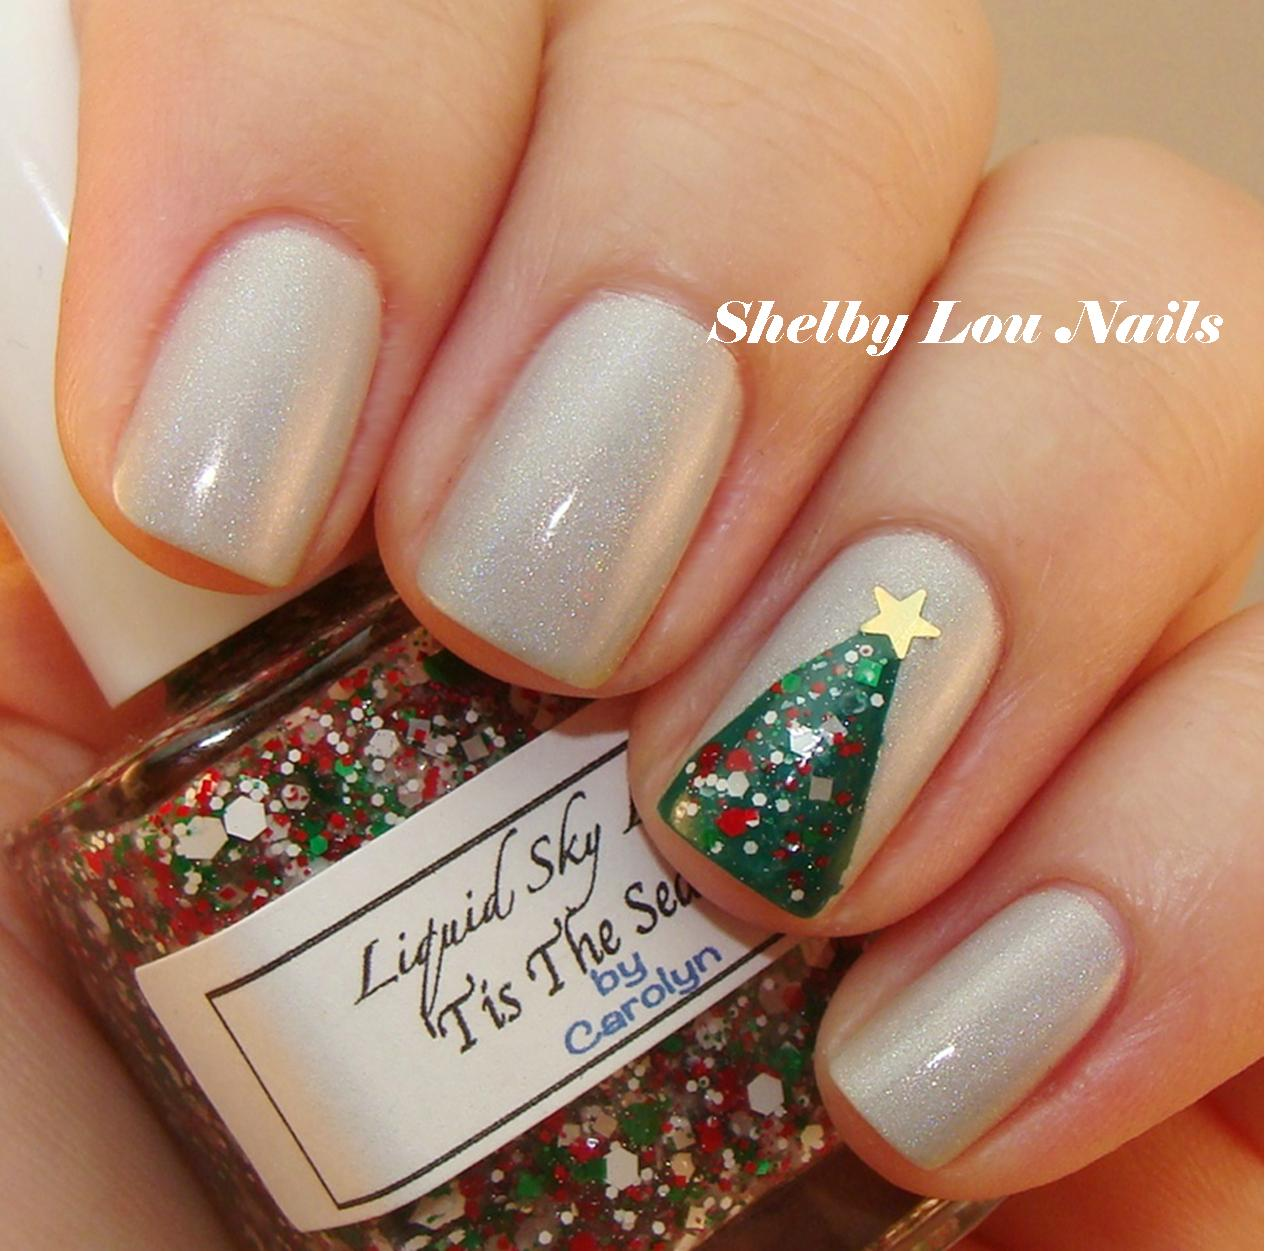 Christmas Colored Nails With Shelby Lou O Tree Nail Art Tutorial